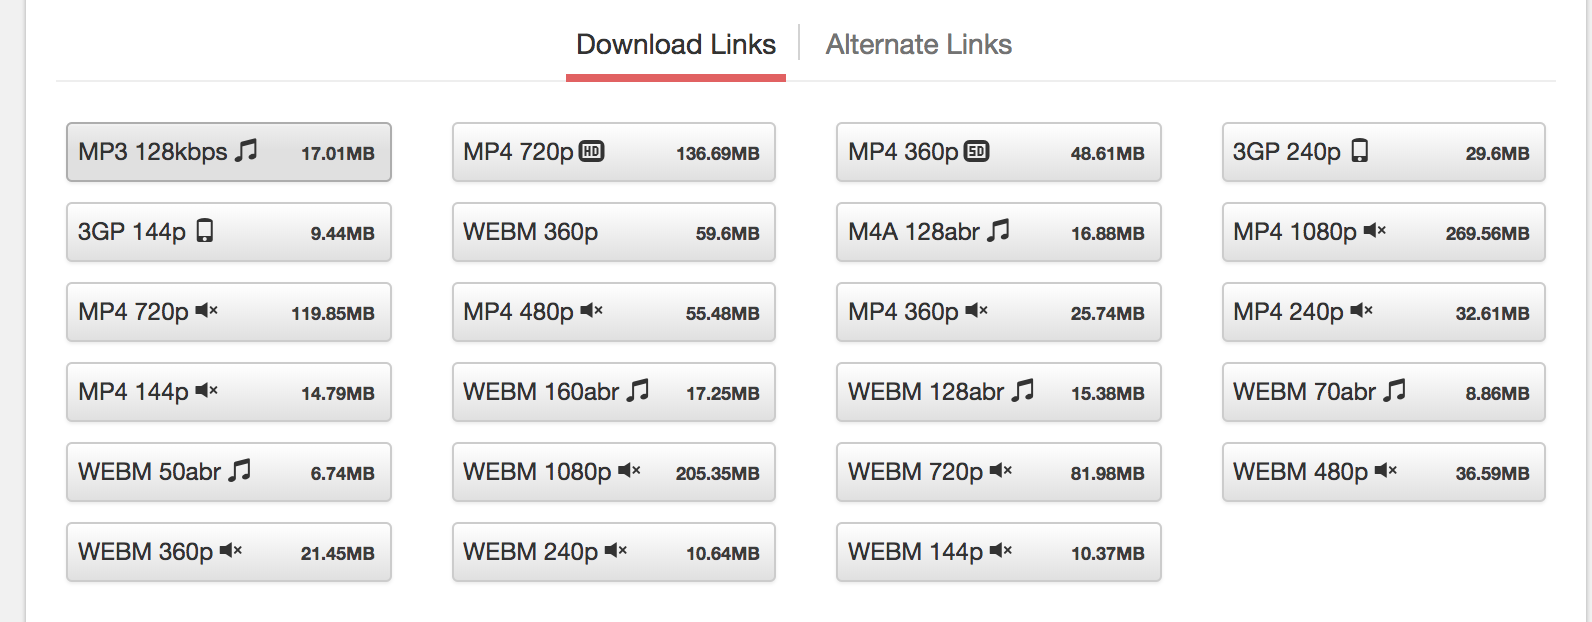 List of Download Links to download MP3 of YouTube video